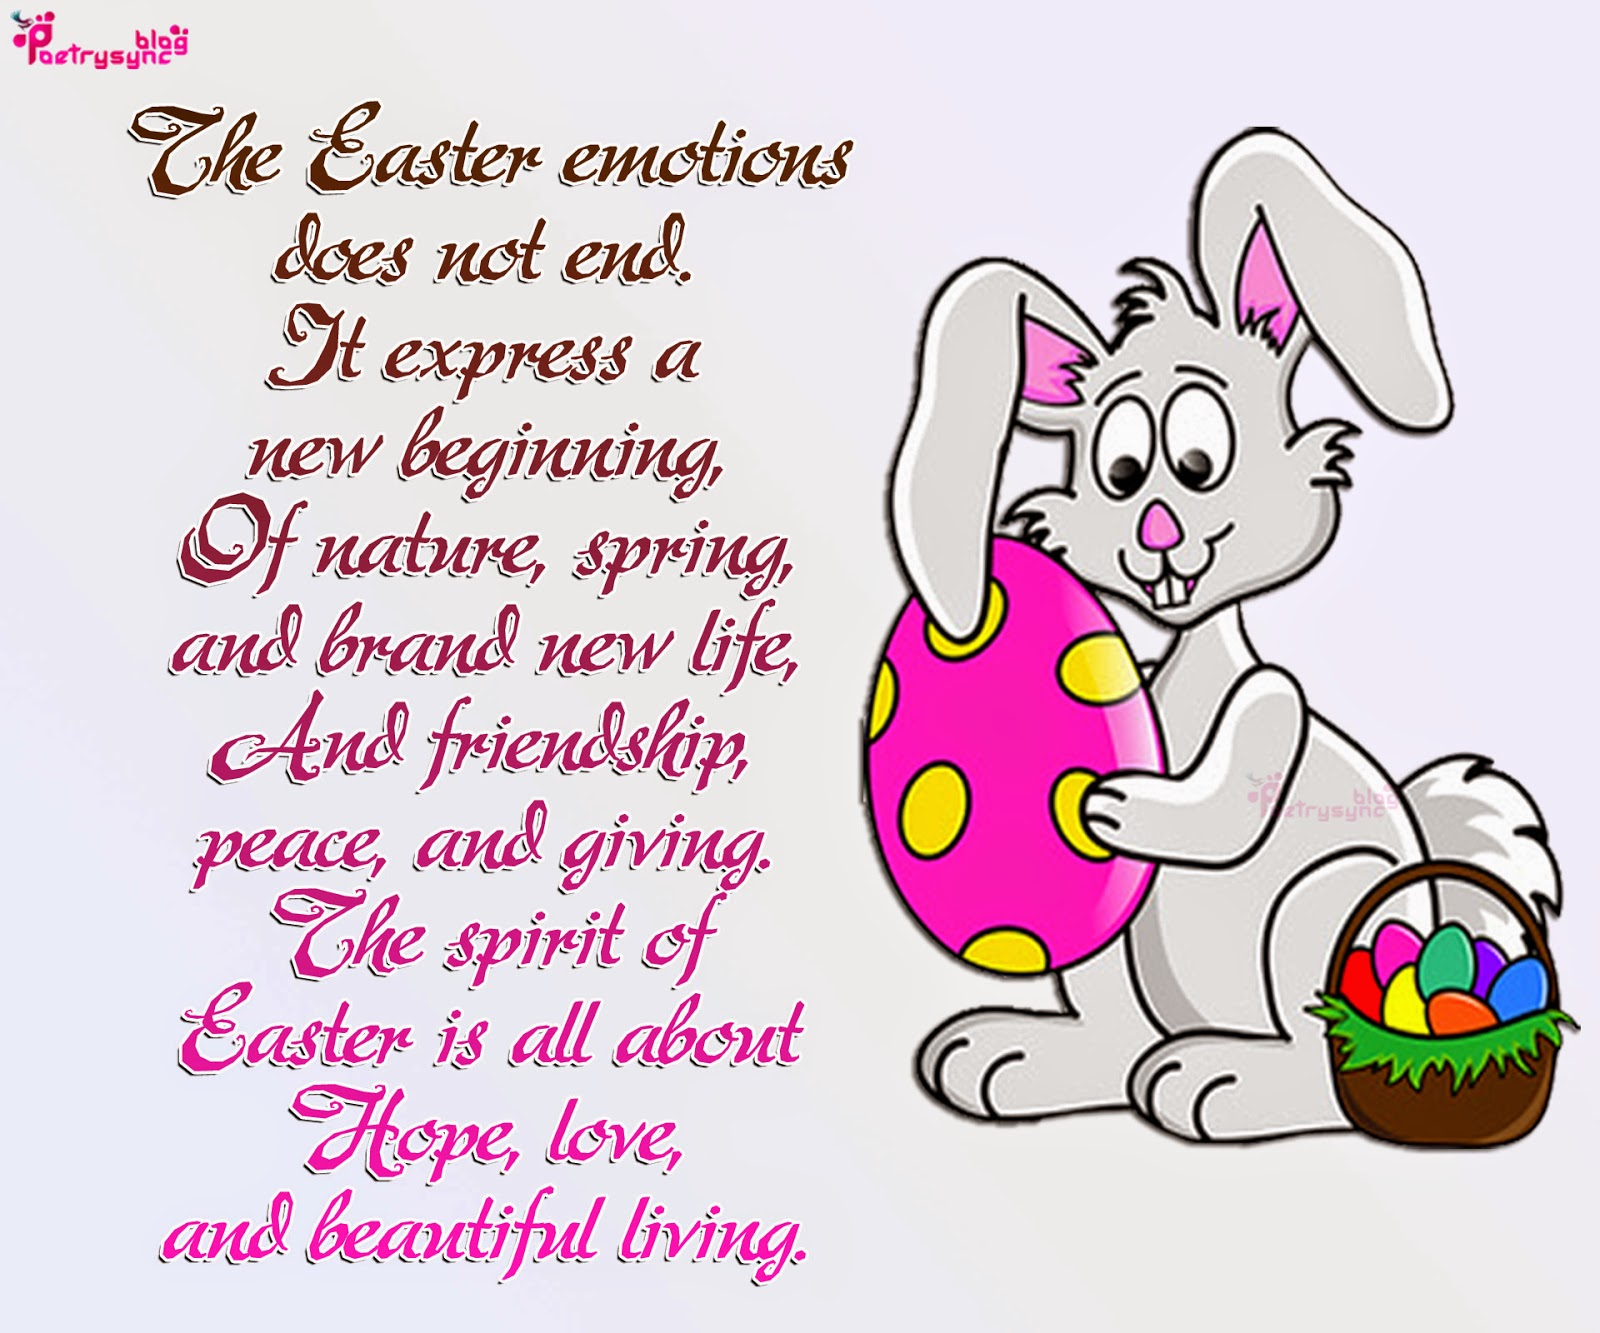 Happy Easter Speeches - Easter Bunny Quotes Sayings Wishes Messages Bible Verses Poems Prayers Speeches